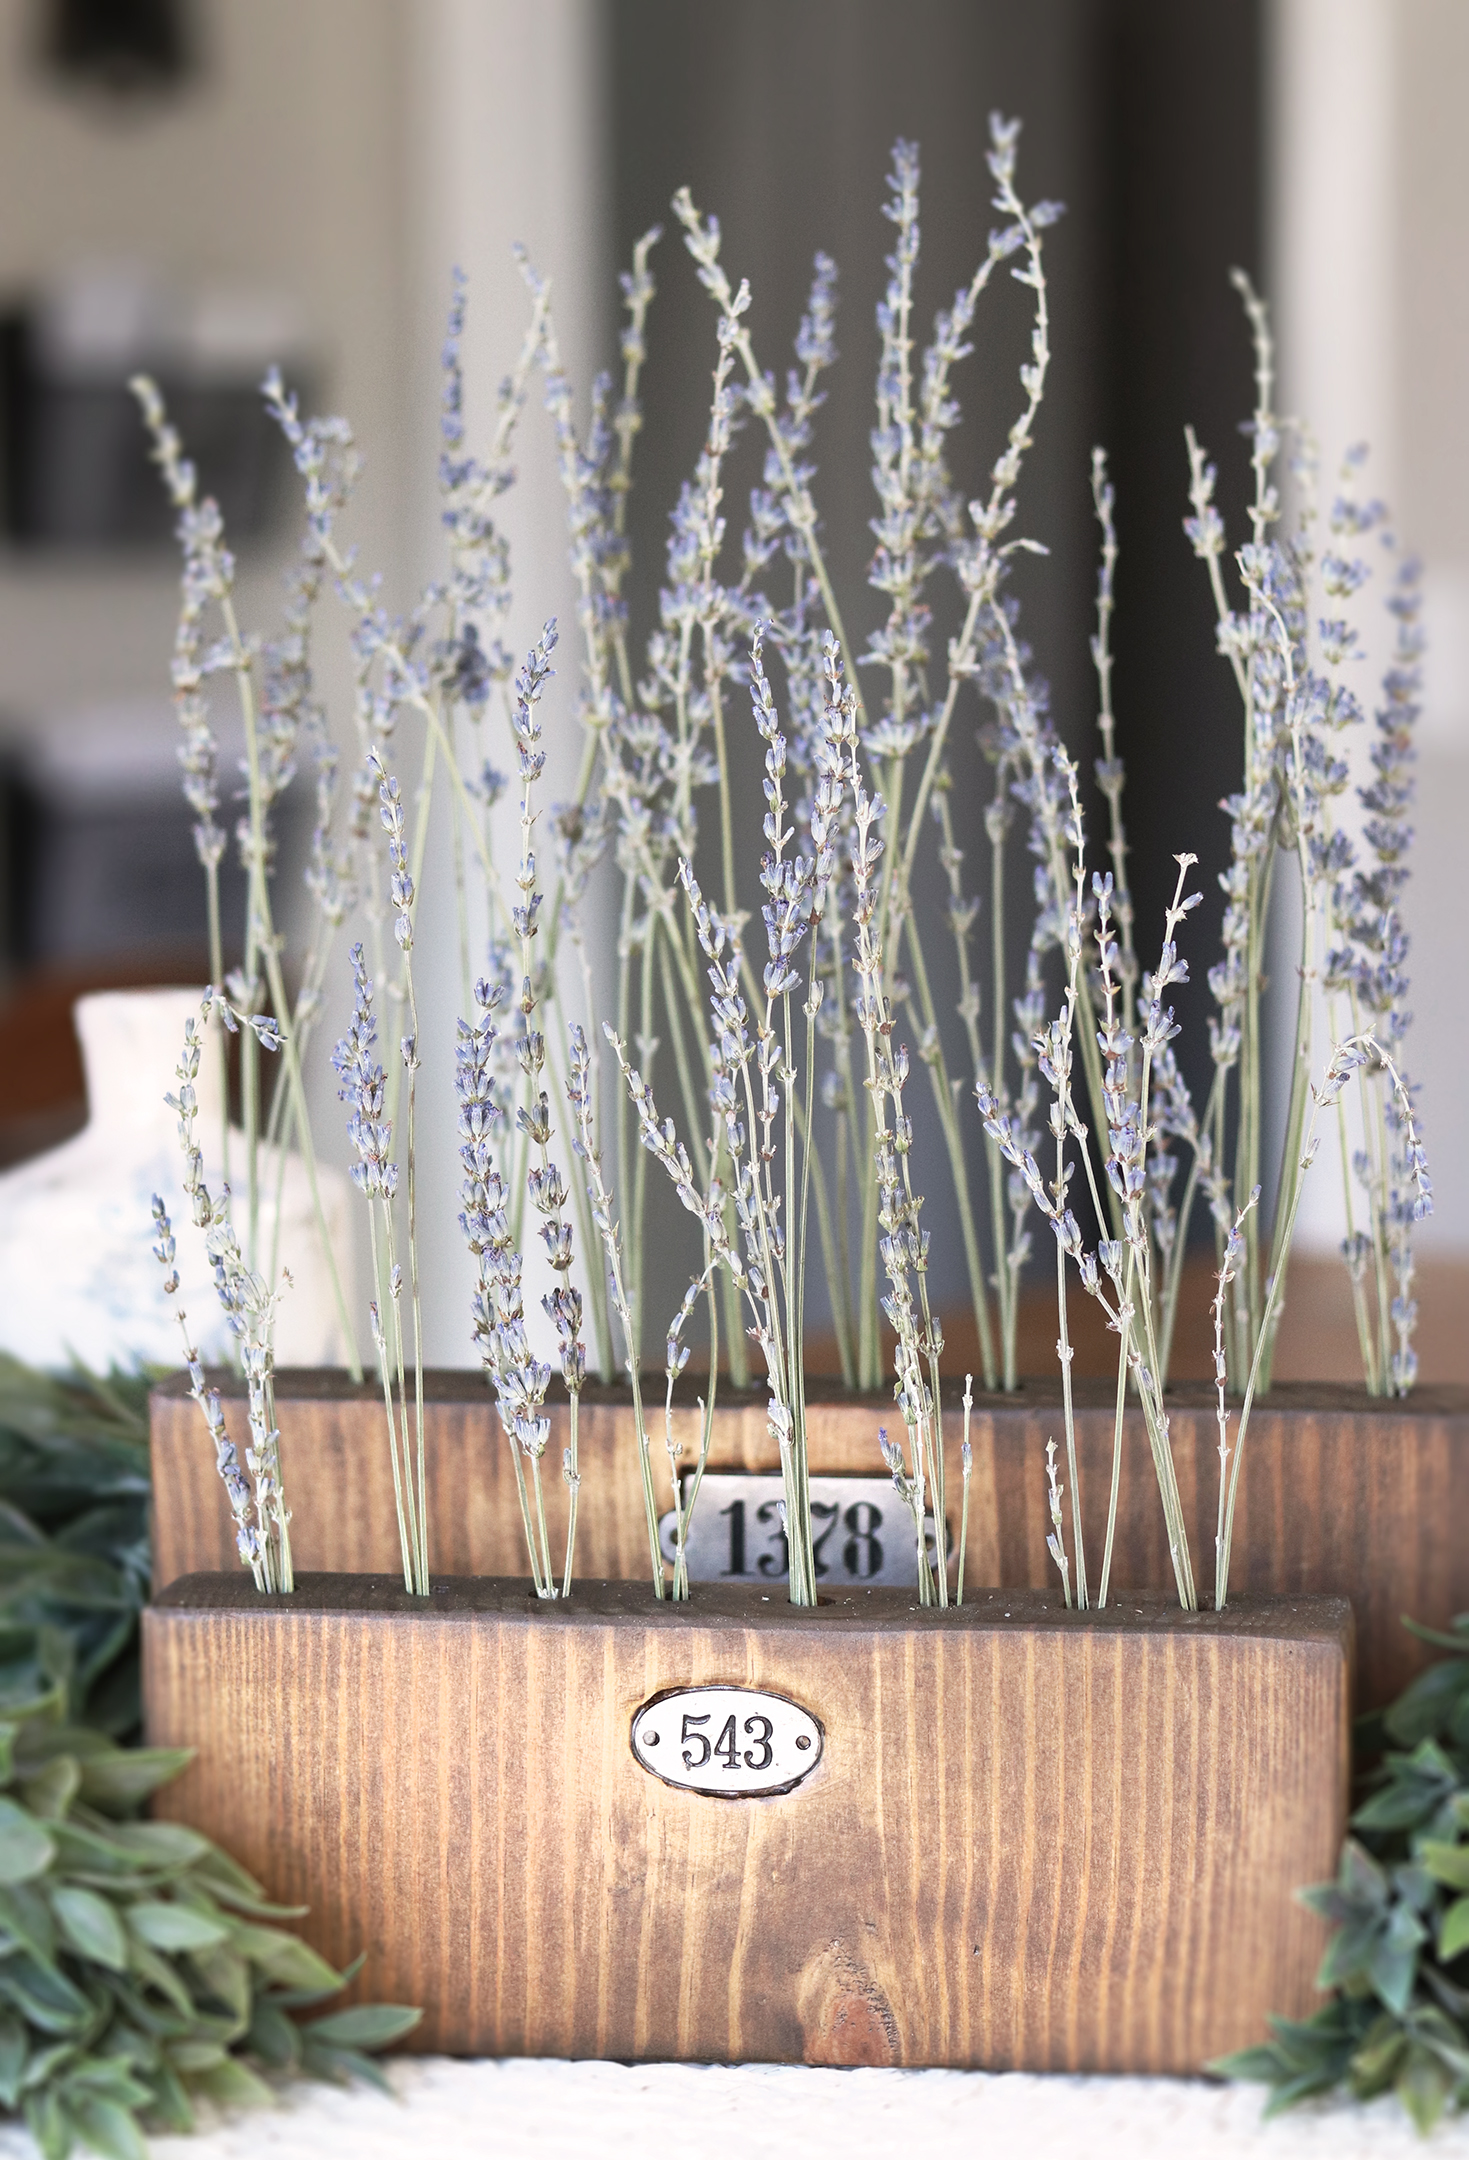 Boroughfare Home Vintage Home Decot Lavender Set with Metal Number Decals